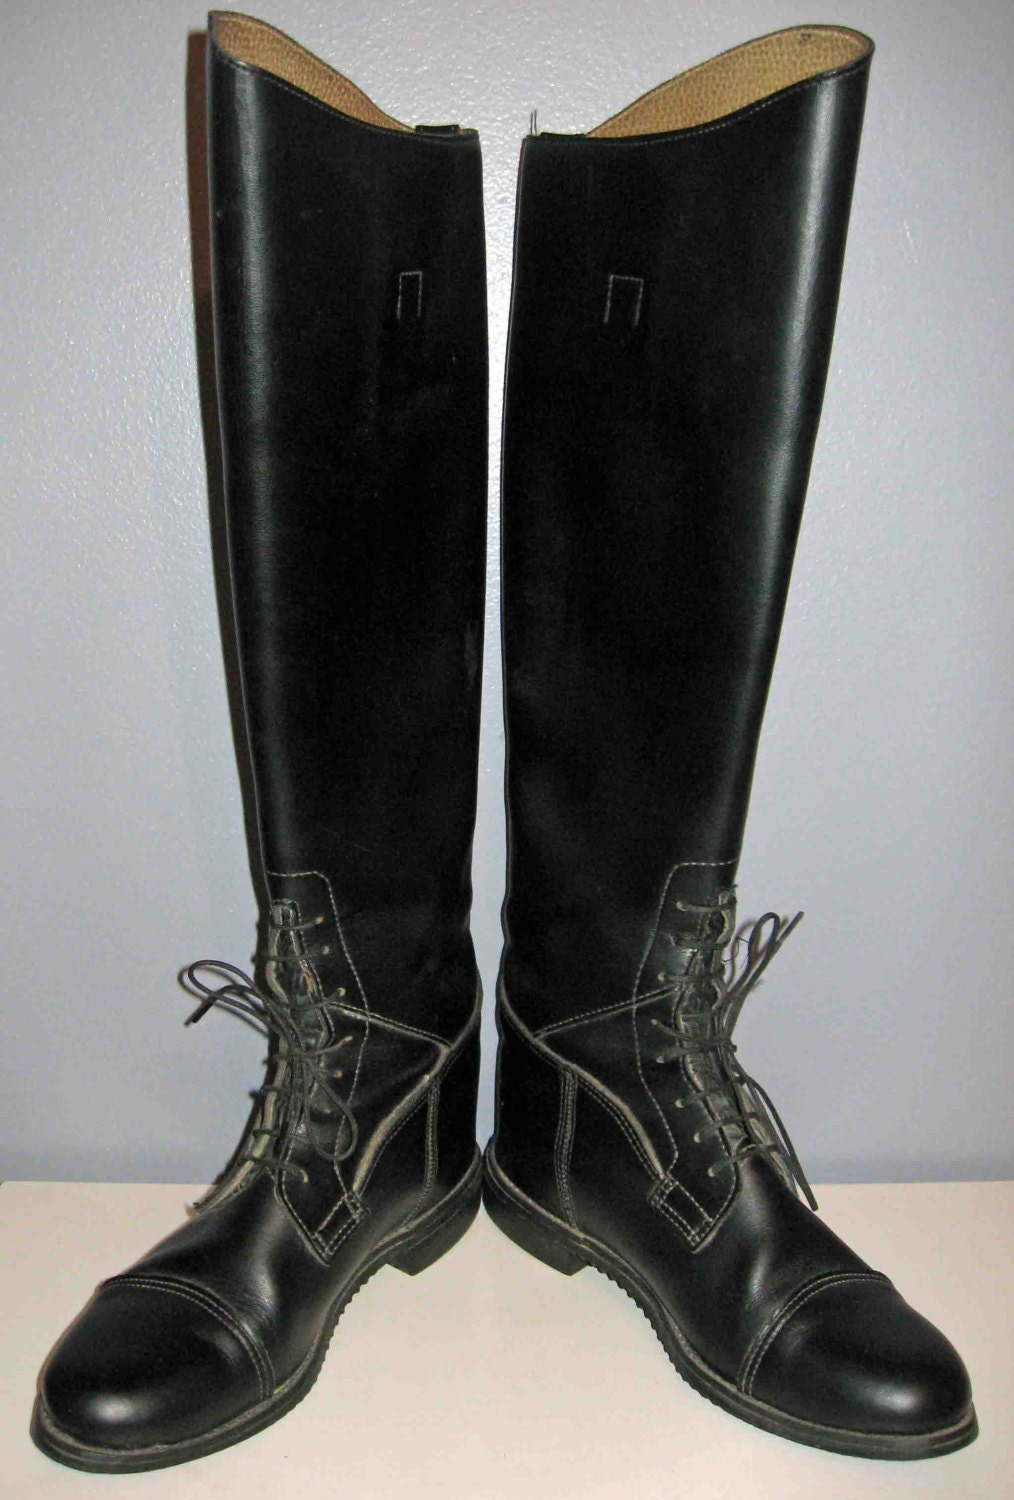 Tall Riding Boots. Tall riding boots for English riders who prefer a tall style English riding liveblog.ga the calf fit, comfortably stopping just below the knee, tall riding boots add style to every ride while being fashionable enough to wear out in town.